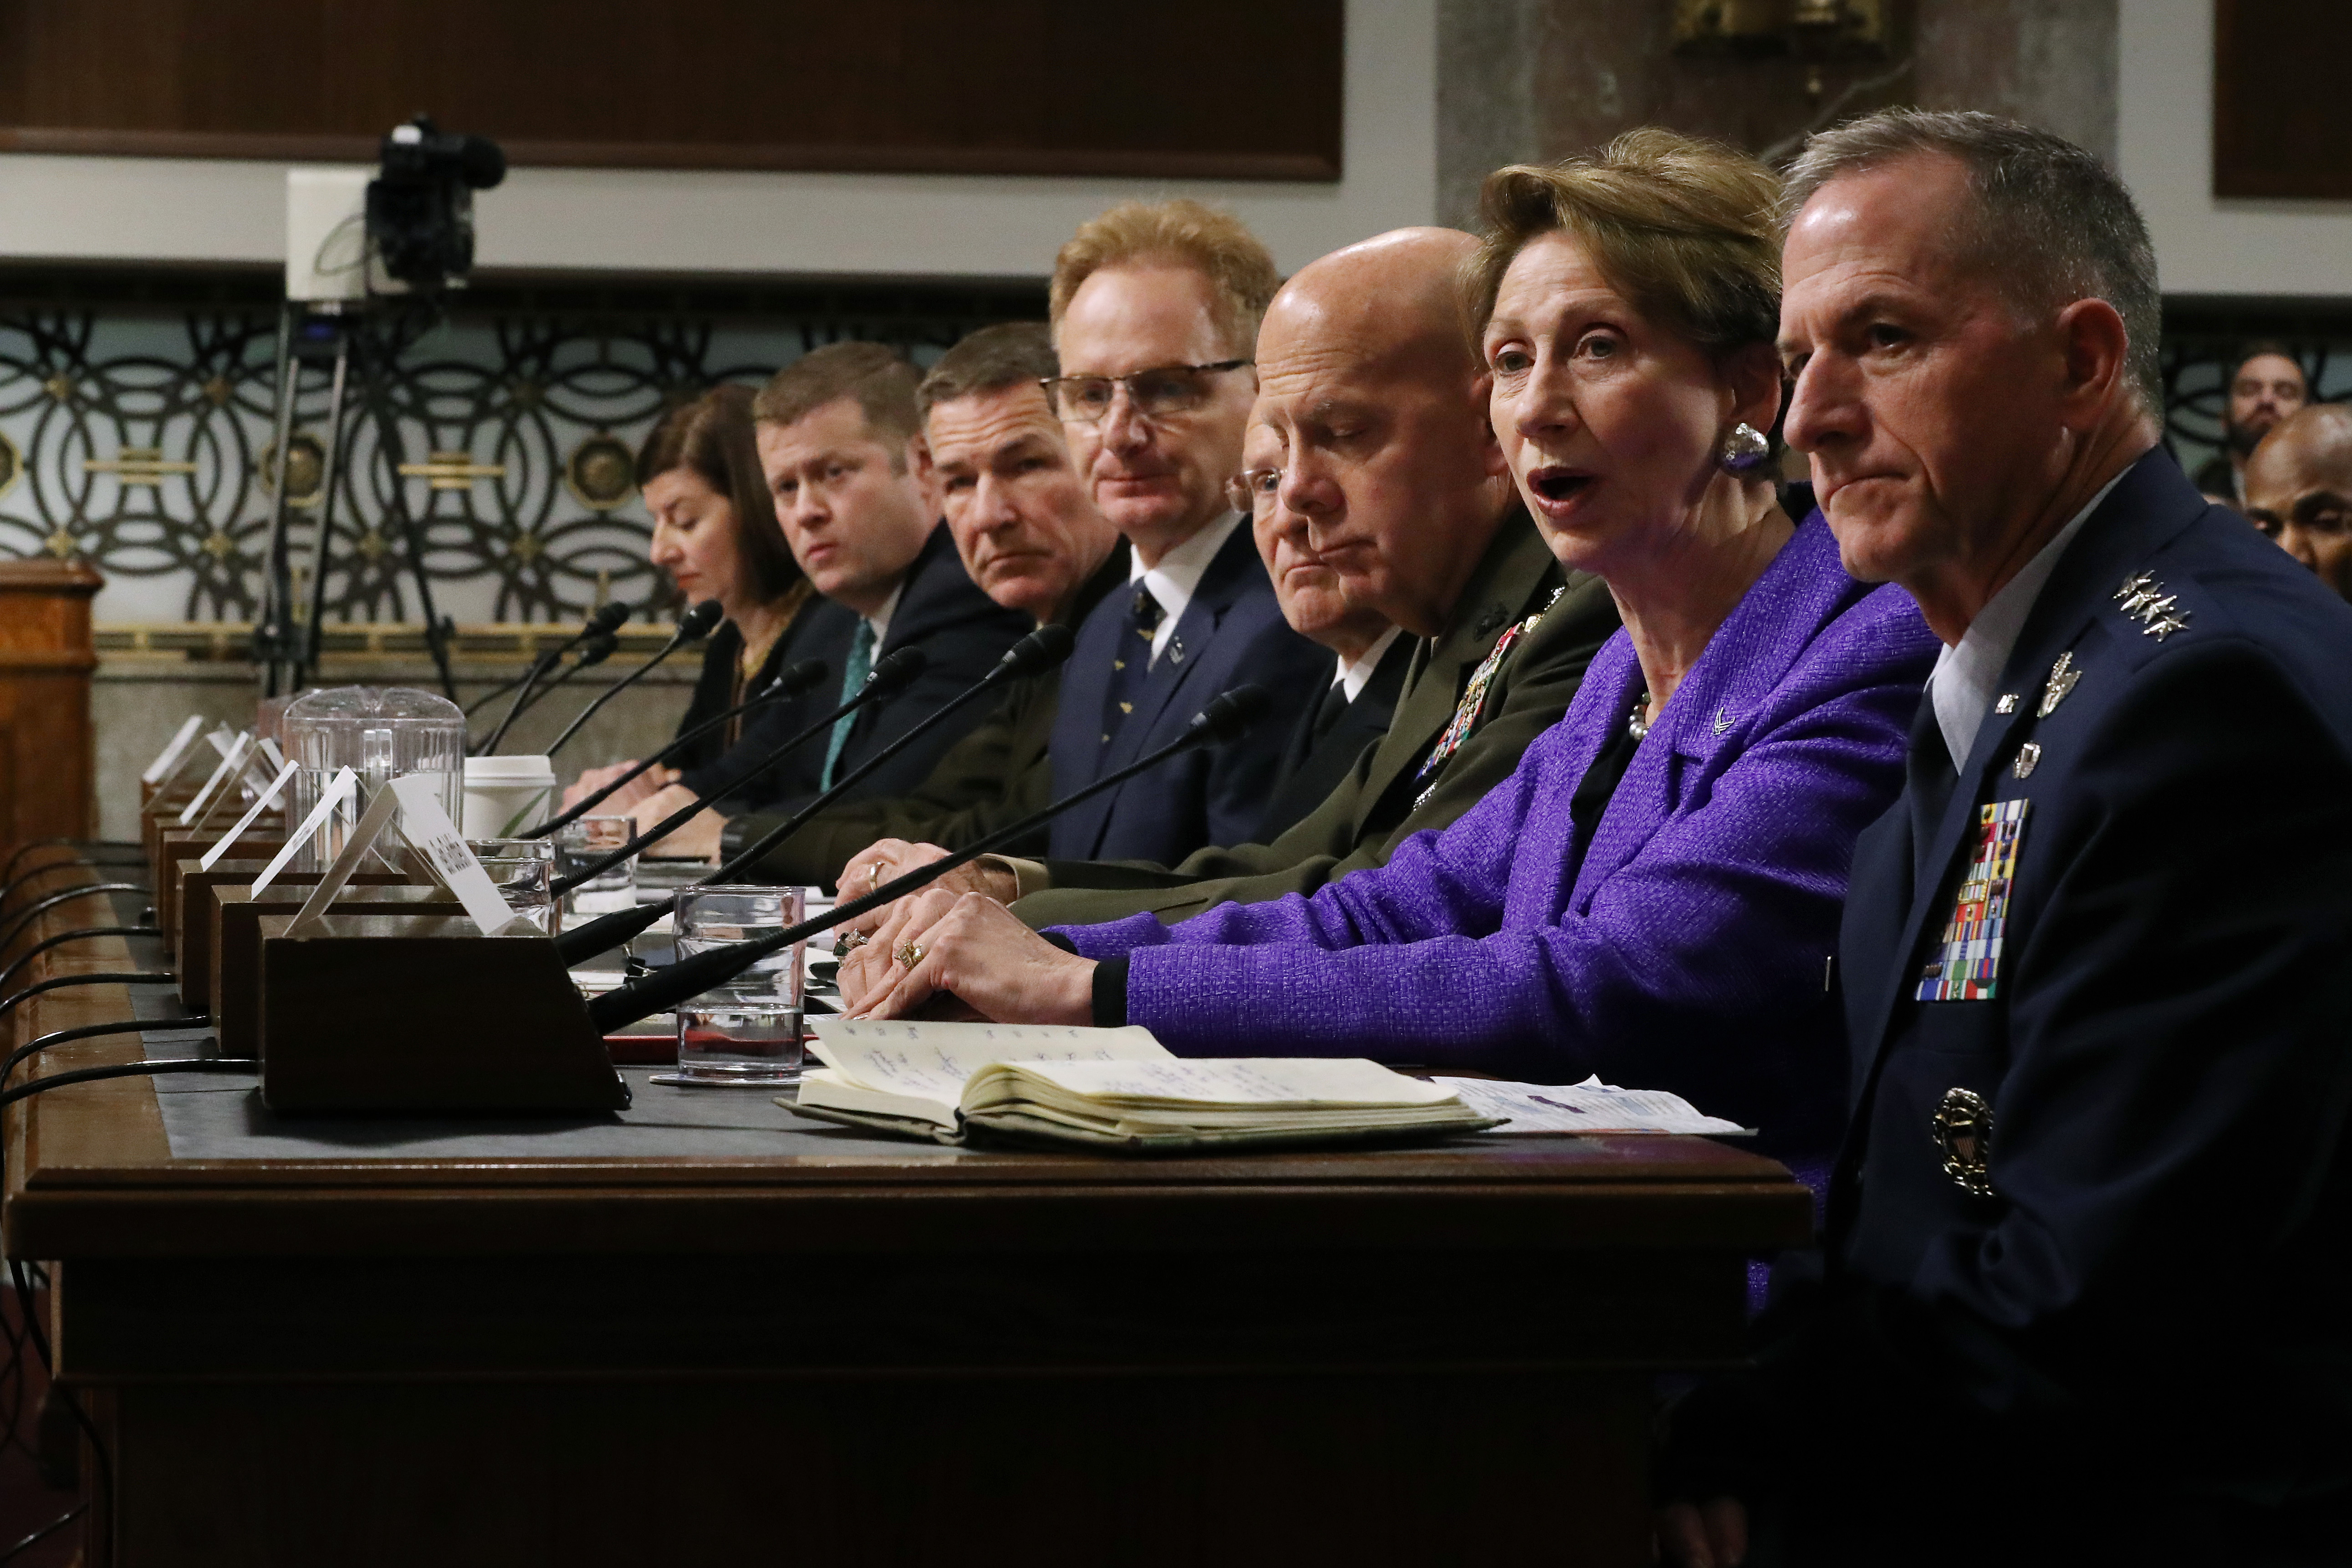 U.S. officials including Air Force Secretary Barbara Barrett (second from right) and Air Force Chief of Staff Gen. Dave Goldfein (right) testify before the Senate Armed Services Committee on Dec. 3, 2019. (Chip Somodevilla/Getty Images)